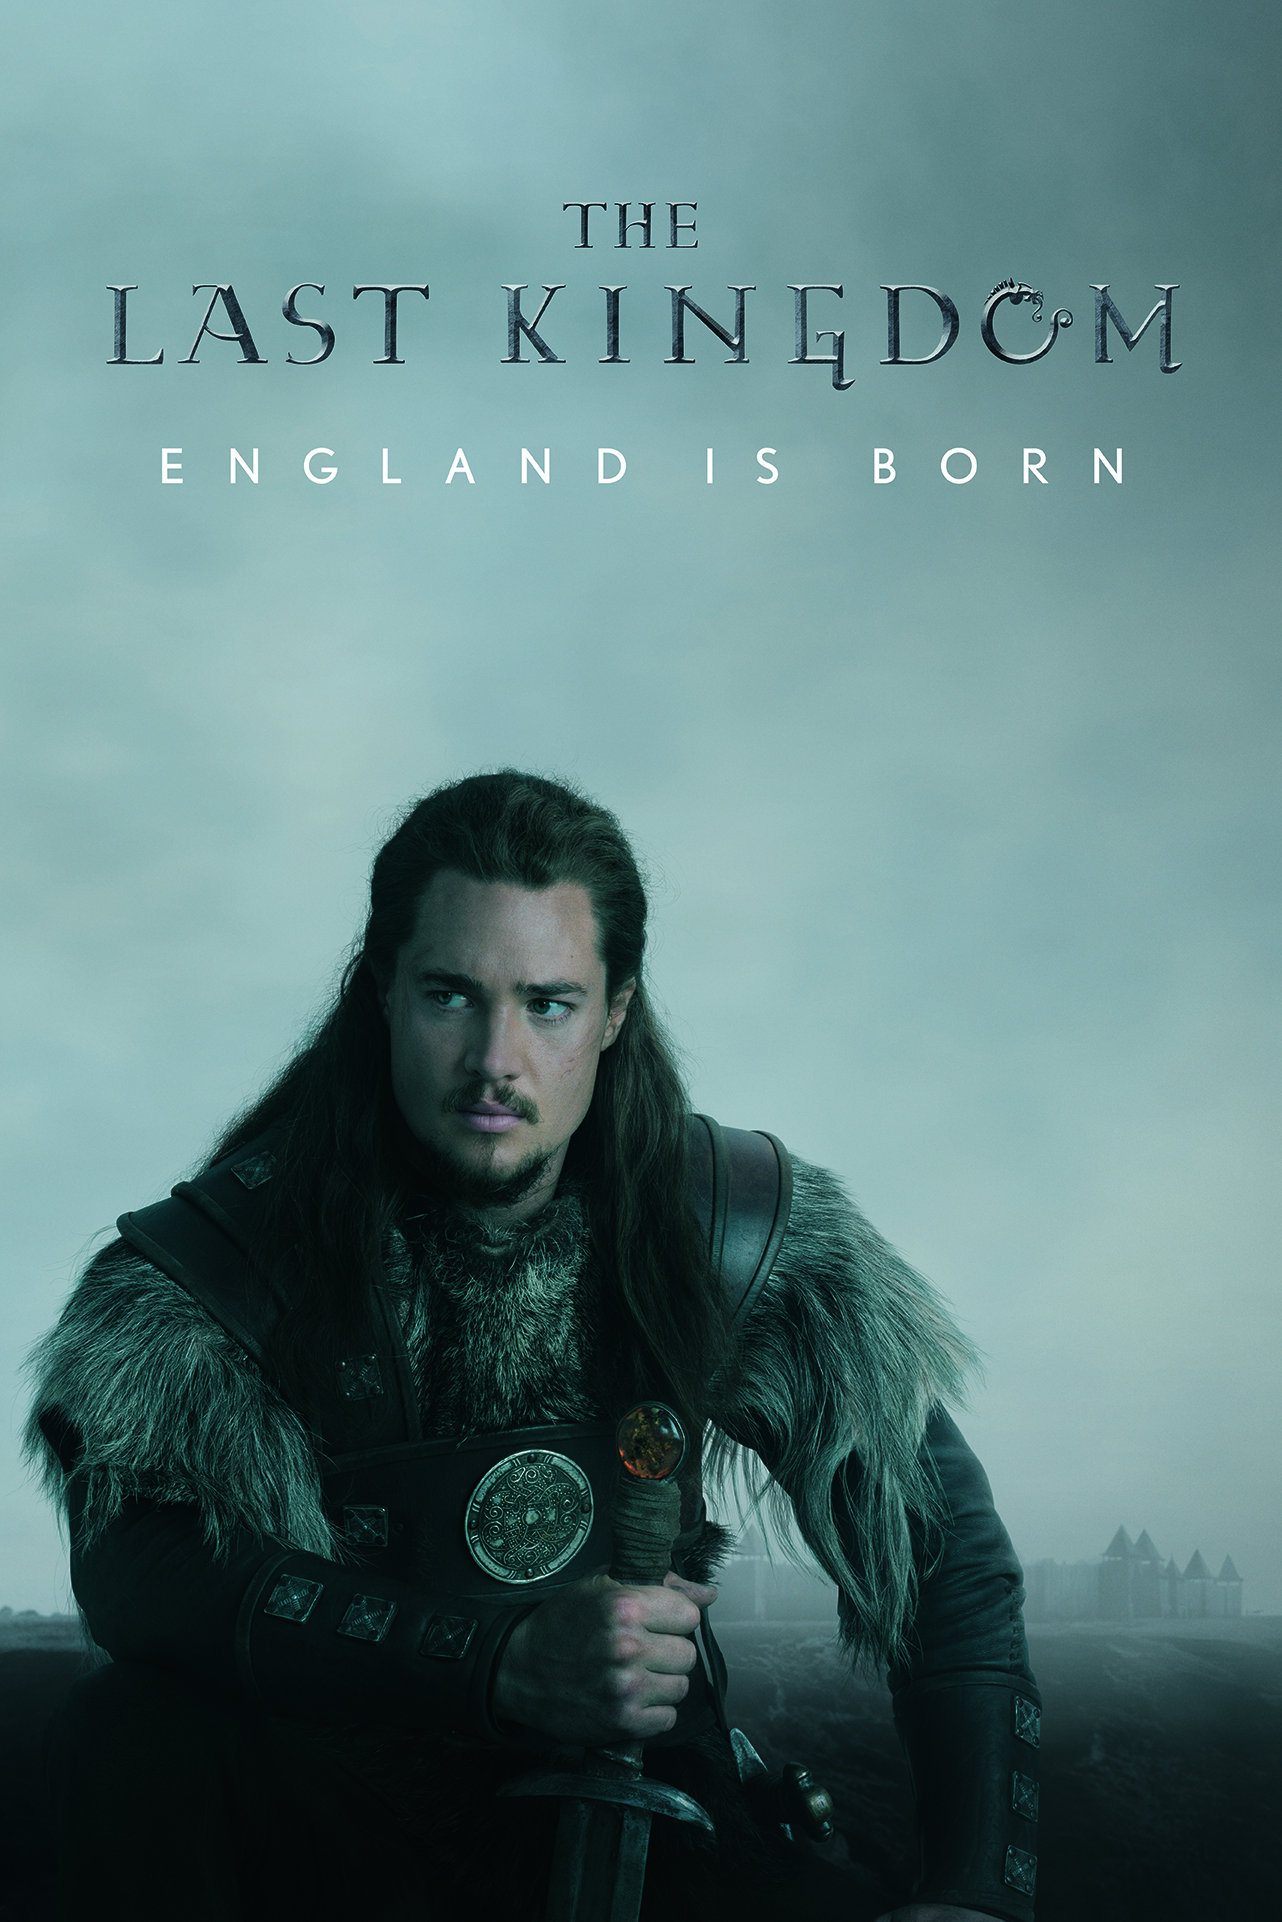 The Last Kingdom Season 3 COMPLETE WEBRip 480p, 720p & 1080p